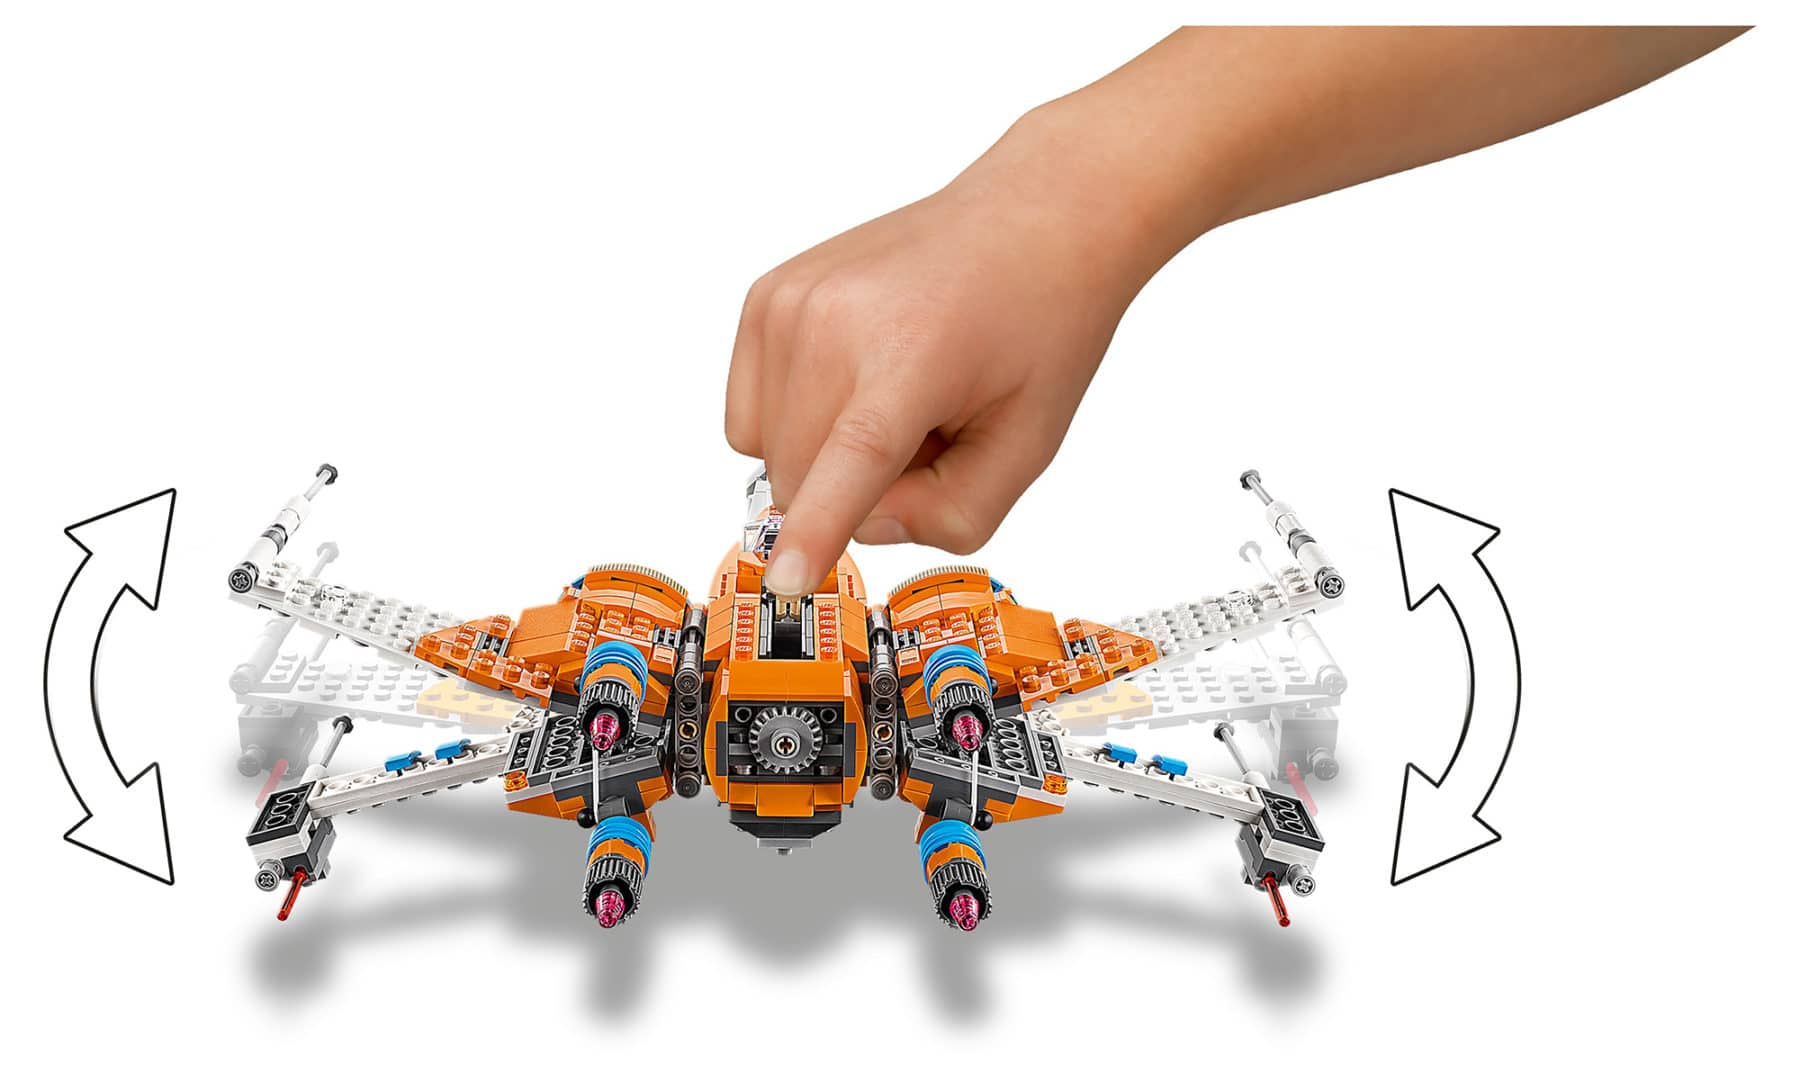 LEGO 75273 Star Wars PoesX-Wing Fighter details